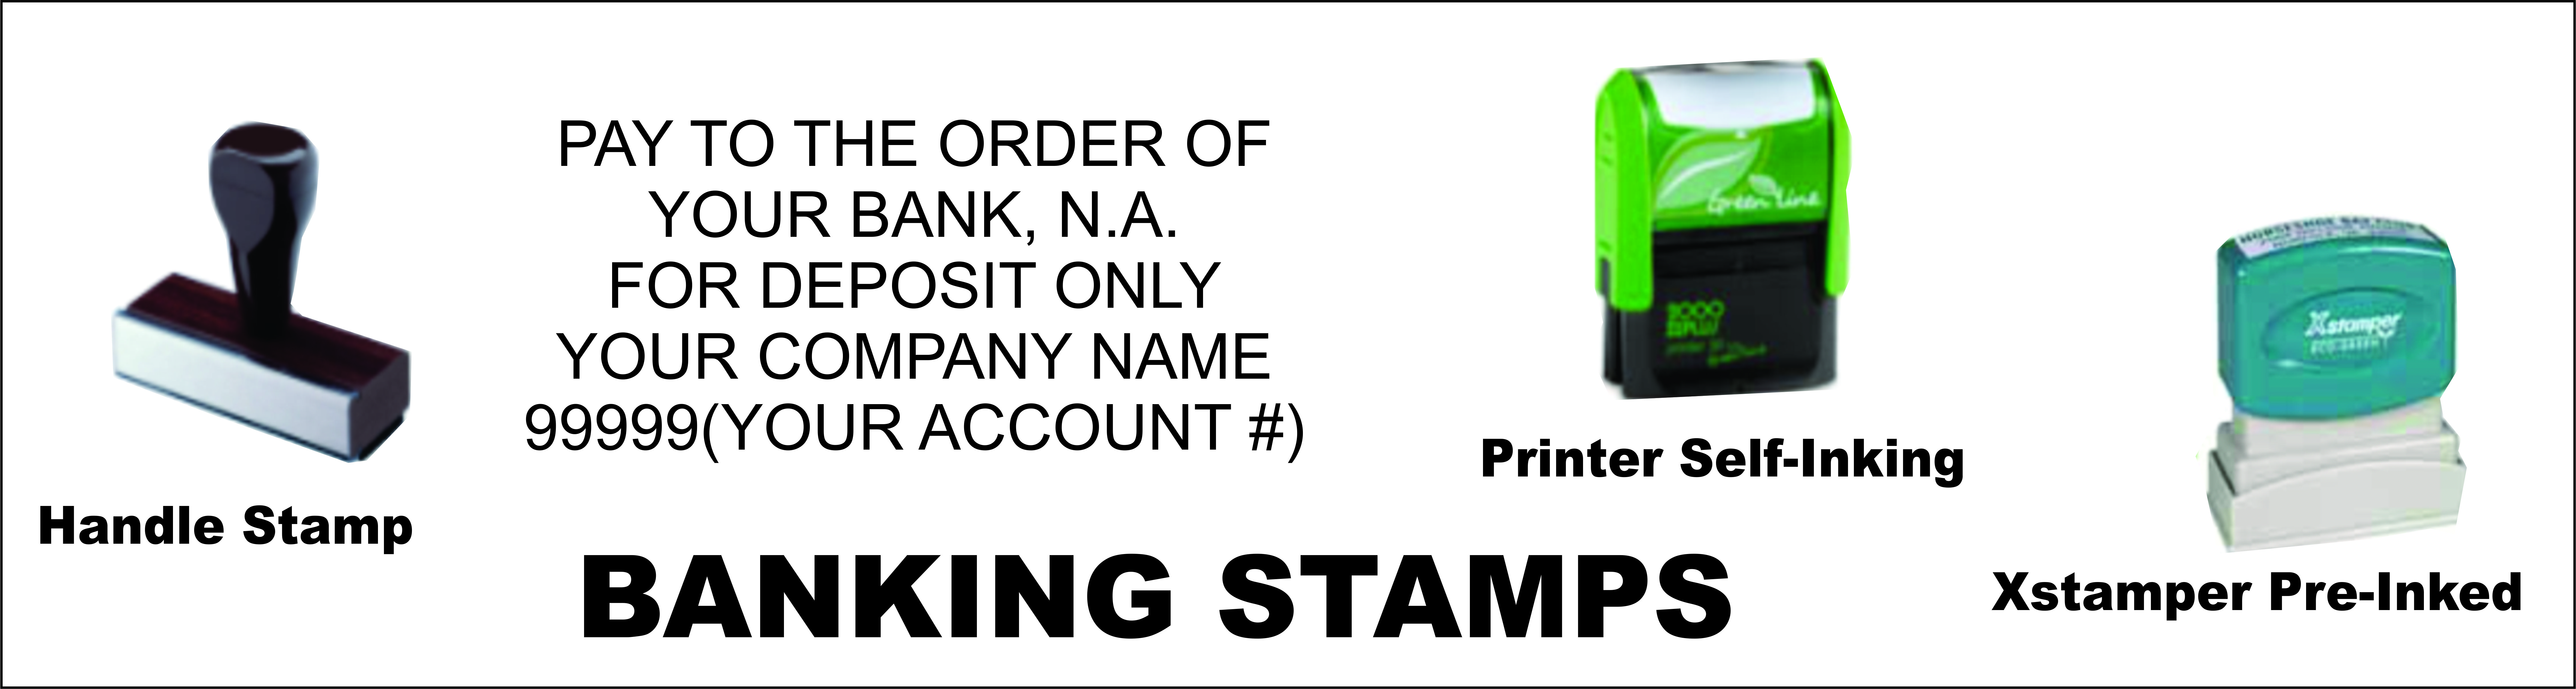 Banking Stamps